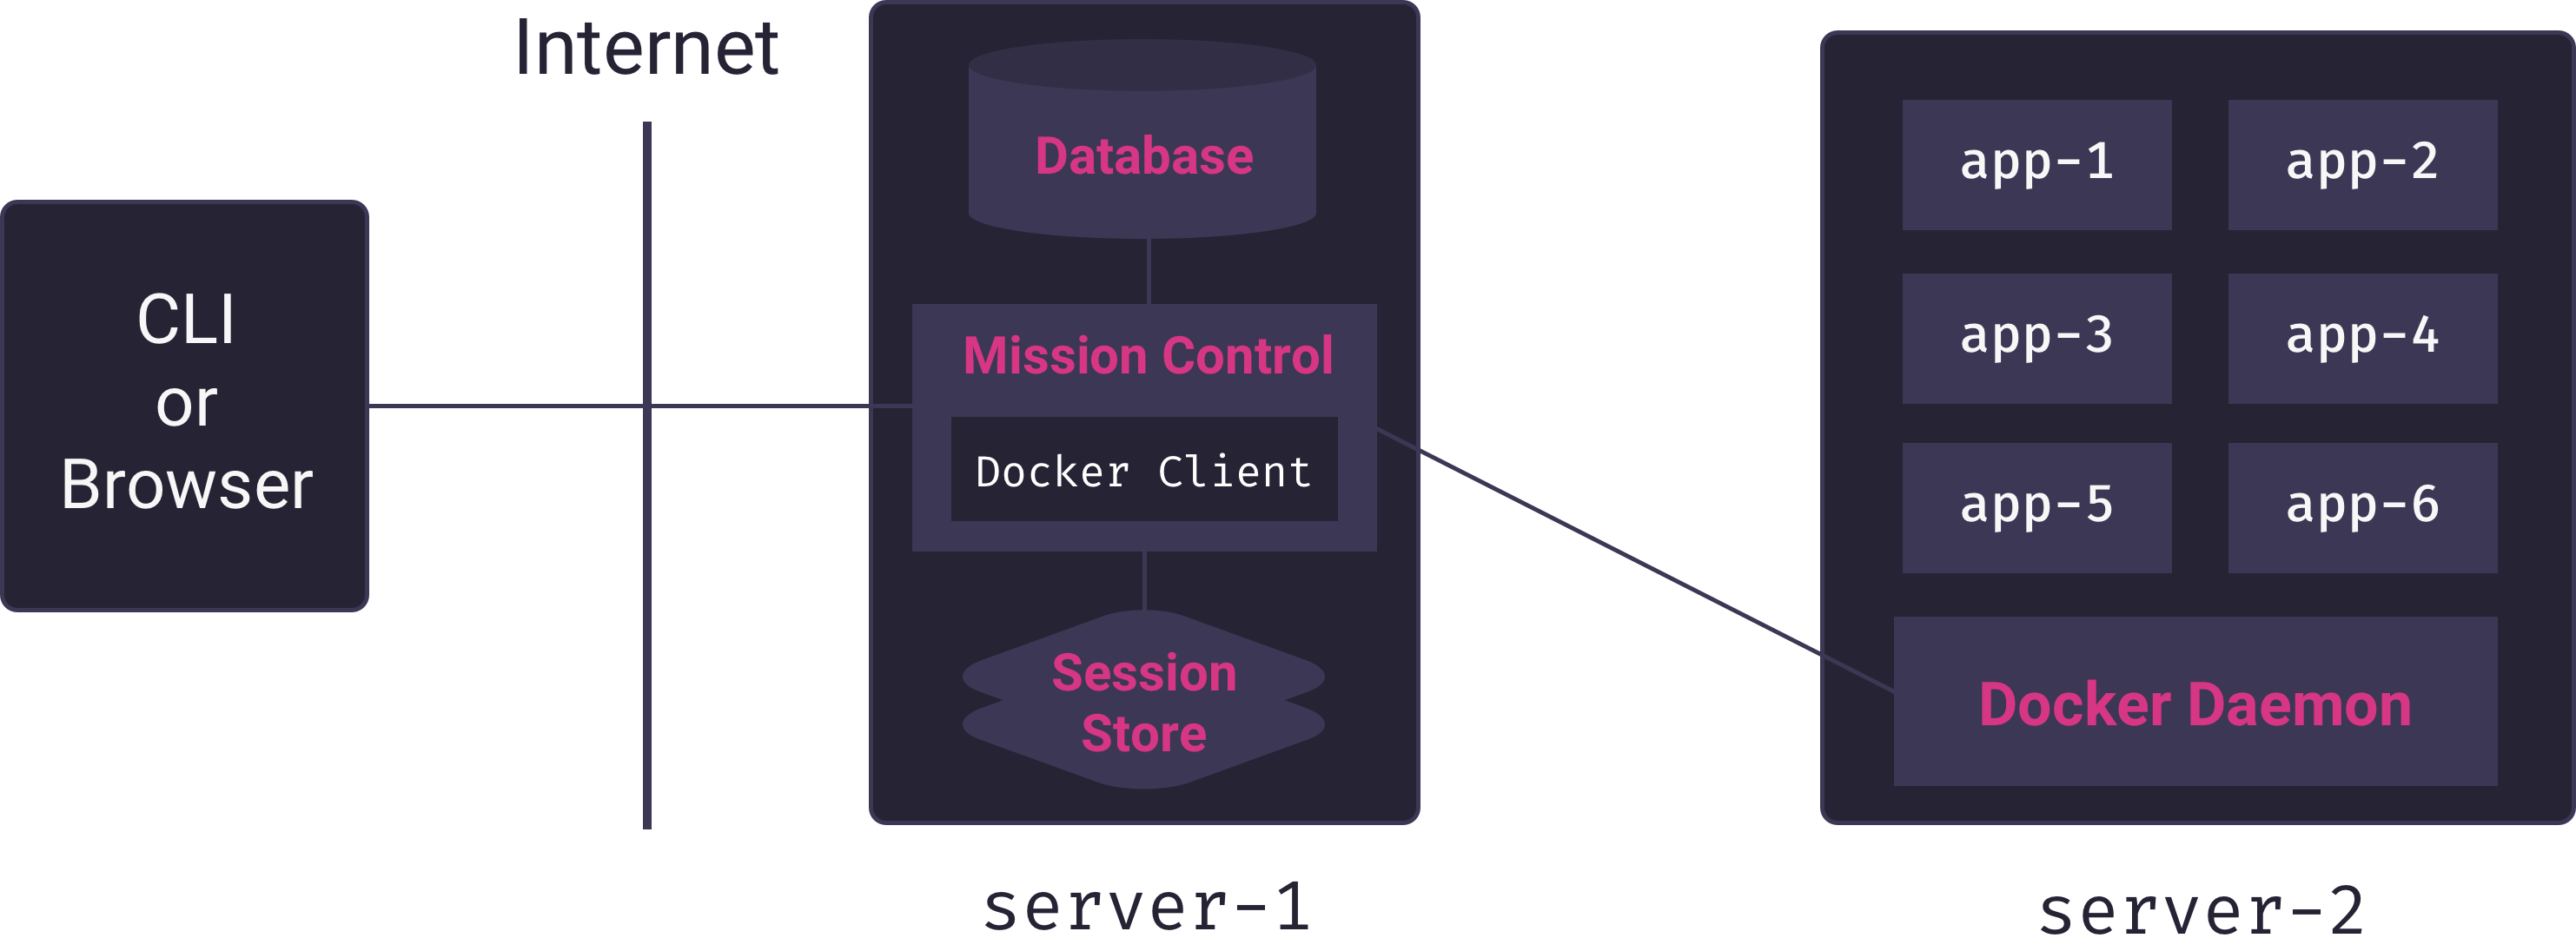 Mission Control service connecting to remote Docker host